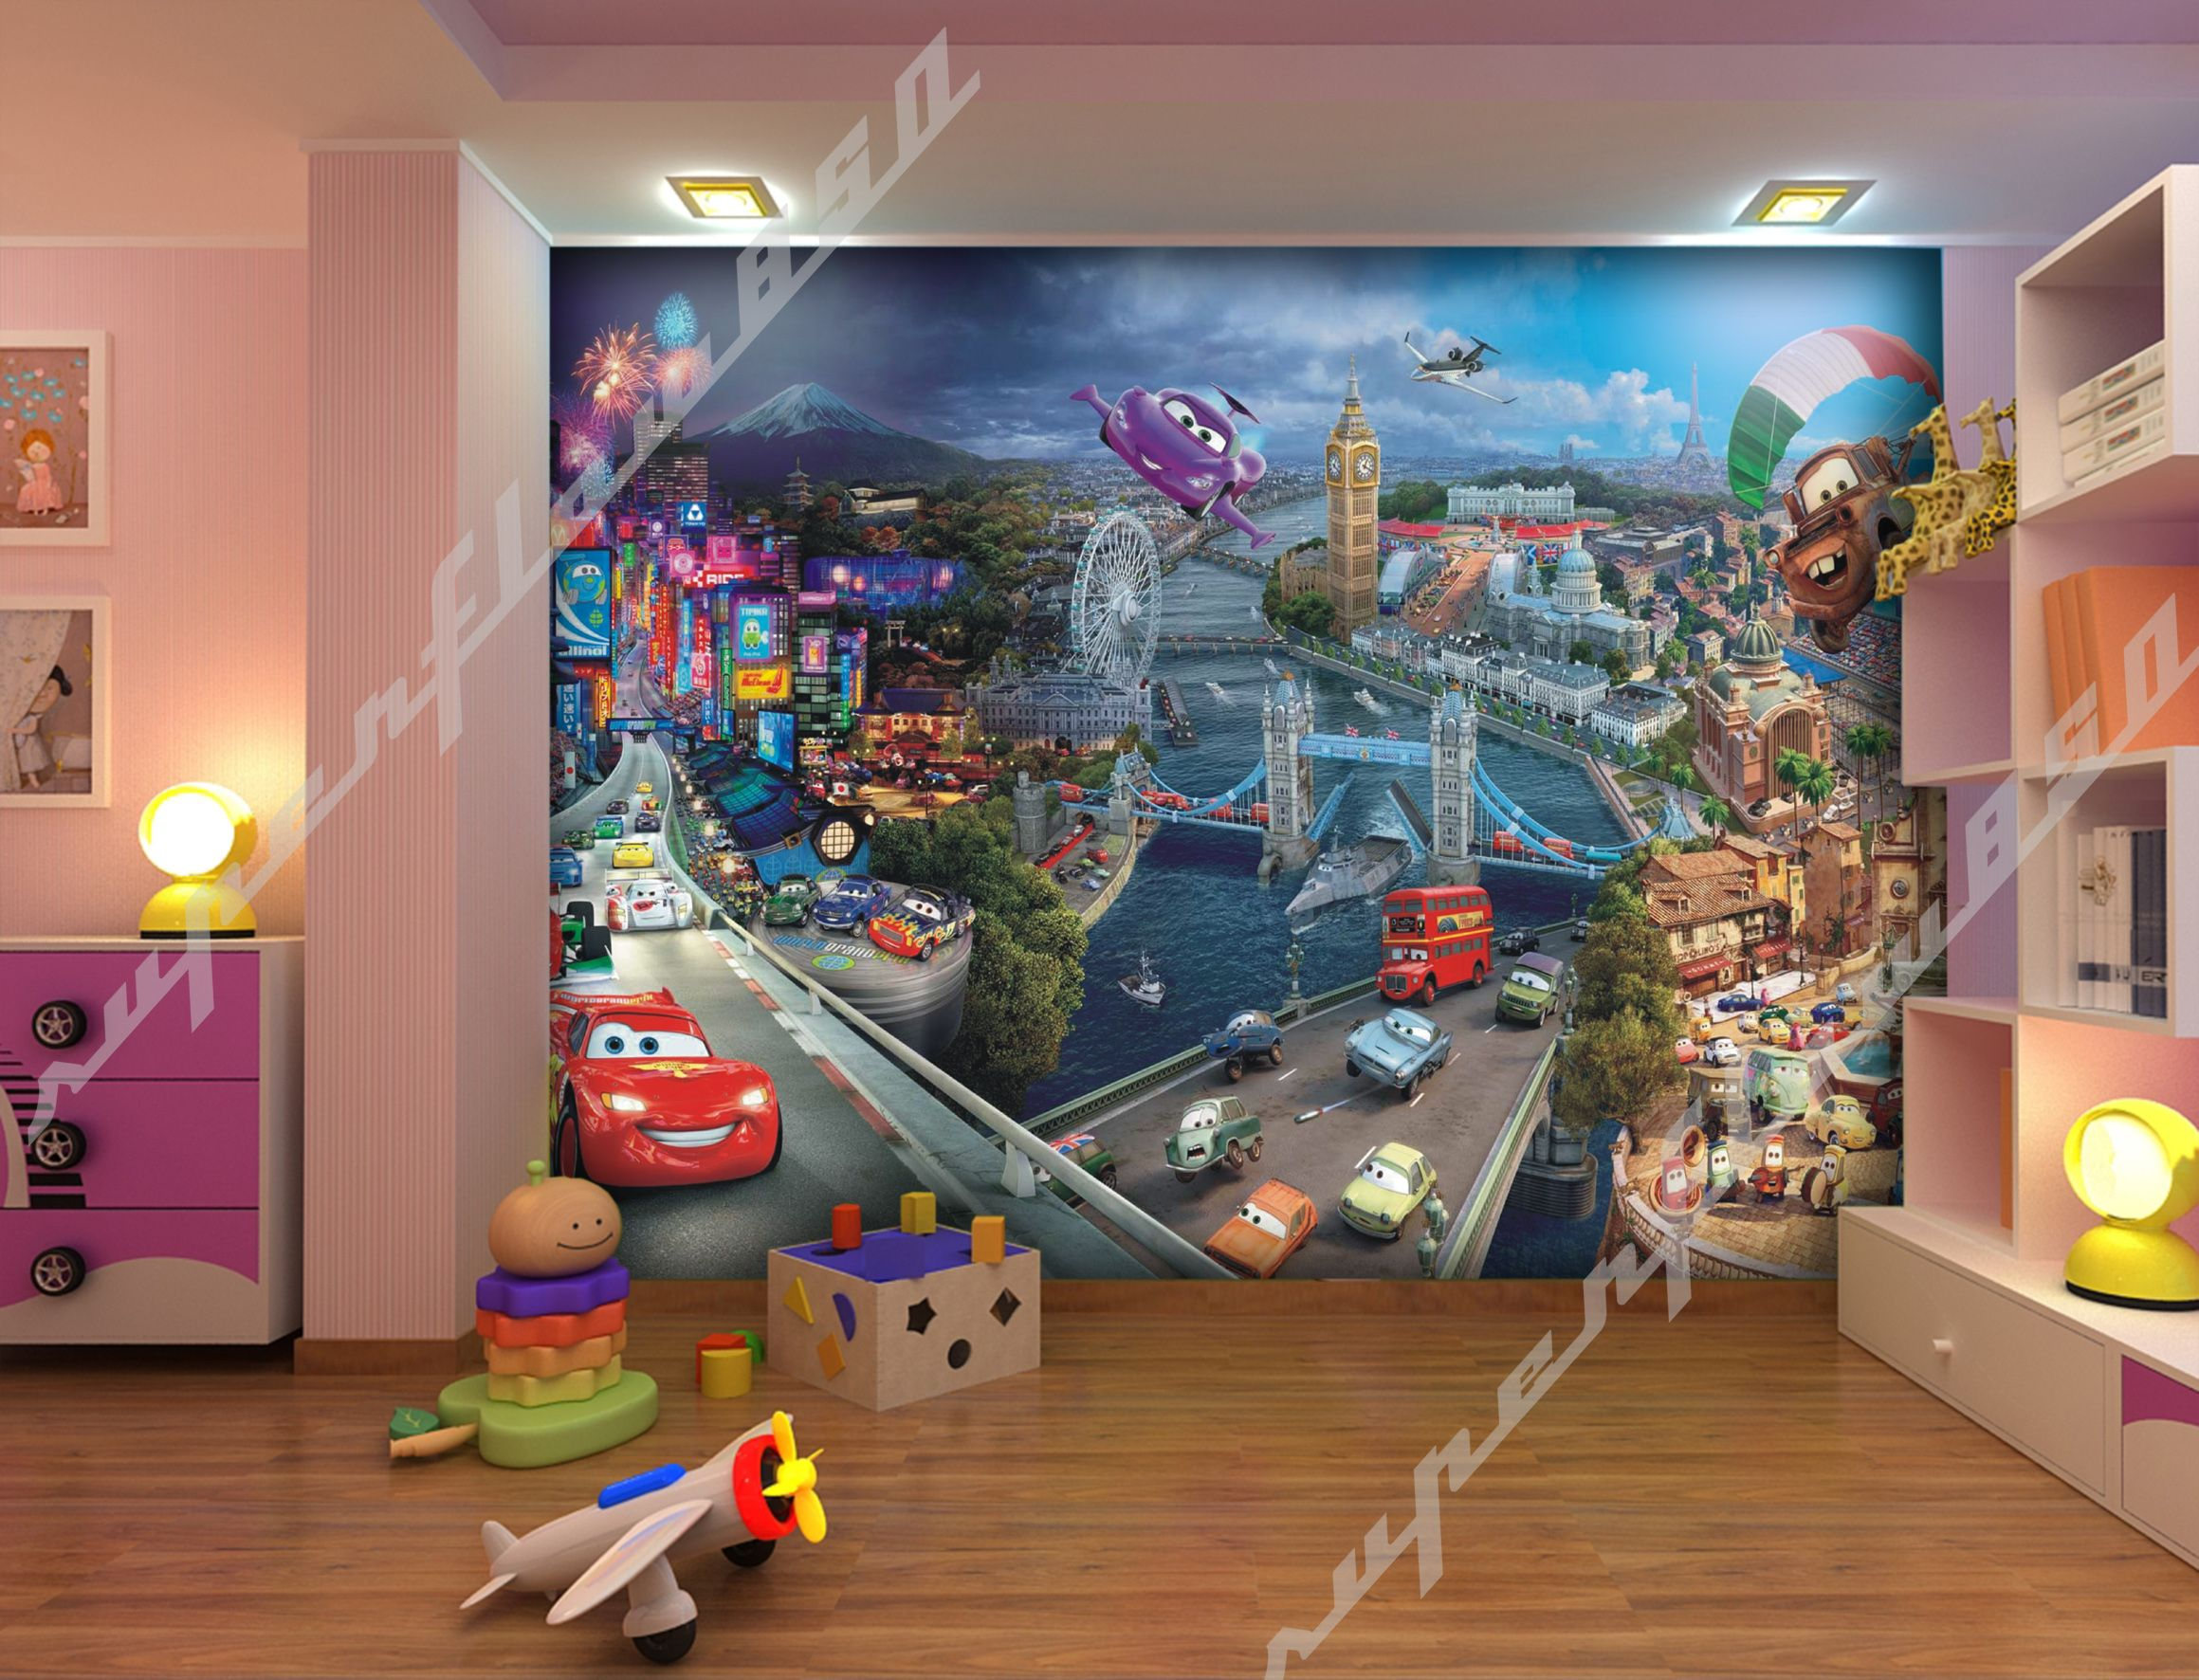 Cars world disney pixar photo wallpaper wall mural kids cars ii disney ebay - Disney pixar cars wall mural ...